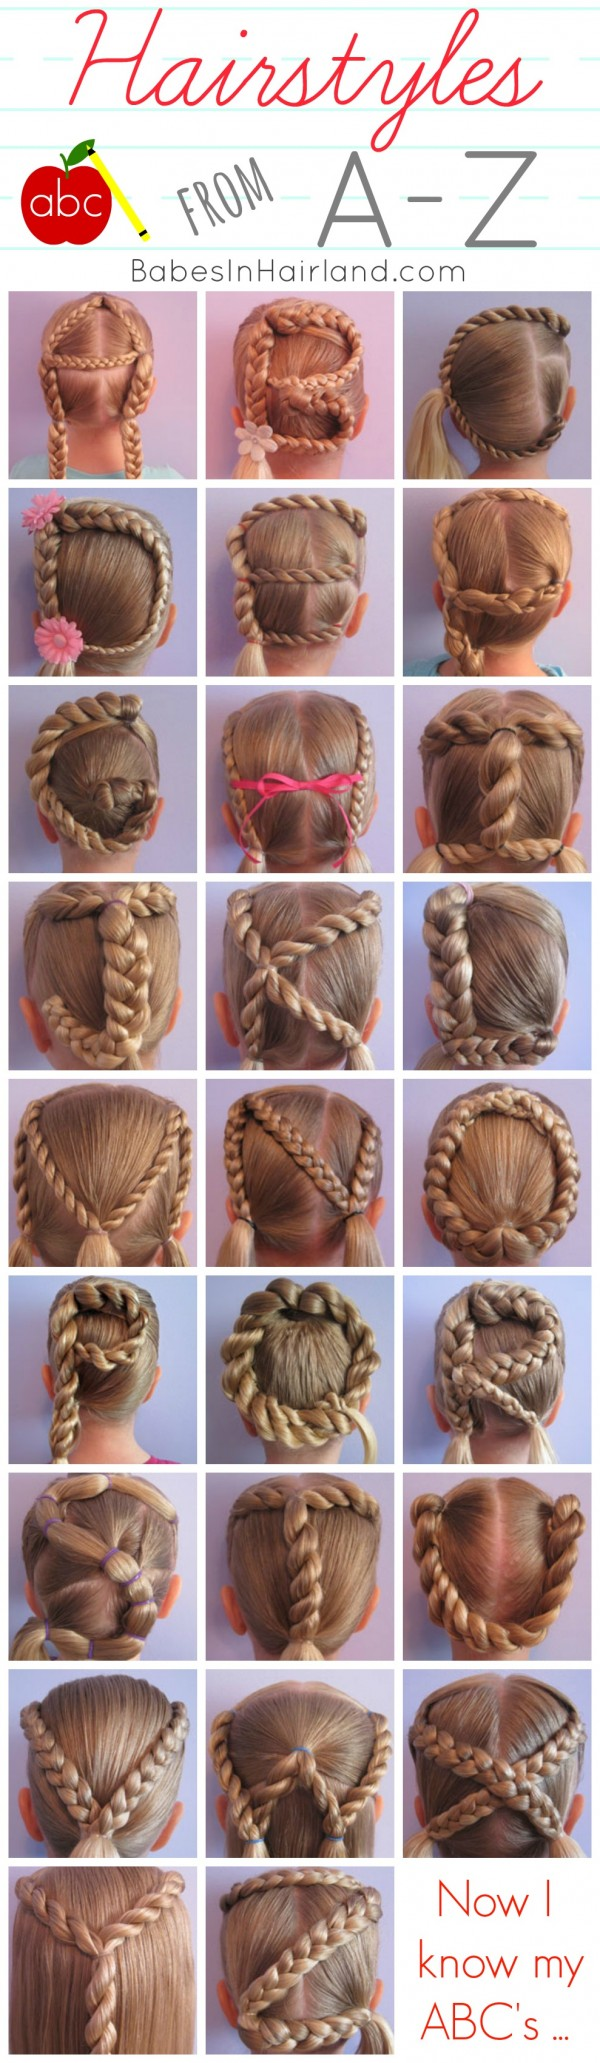 DIY Alphabet Braided Hairstyles